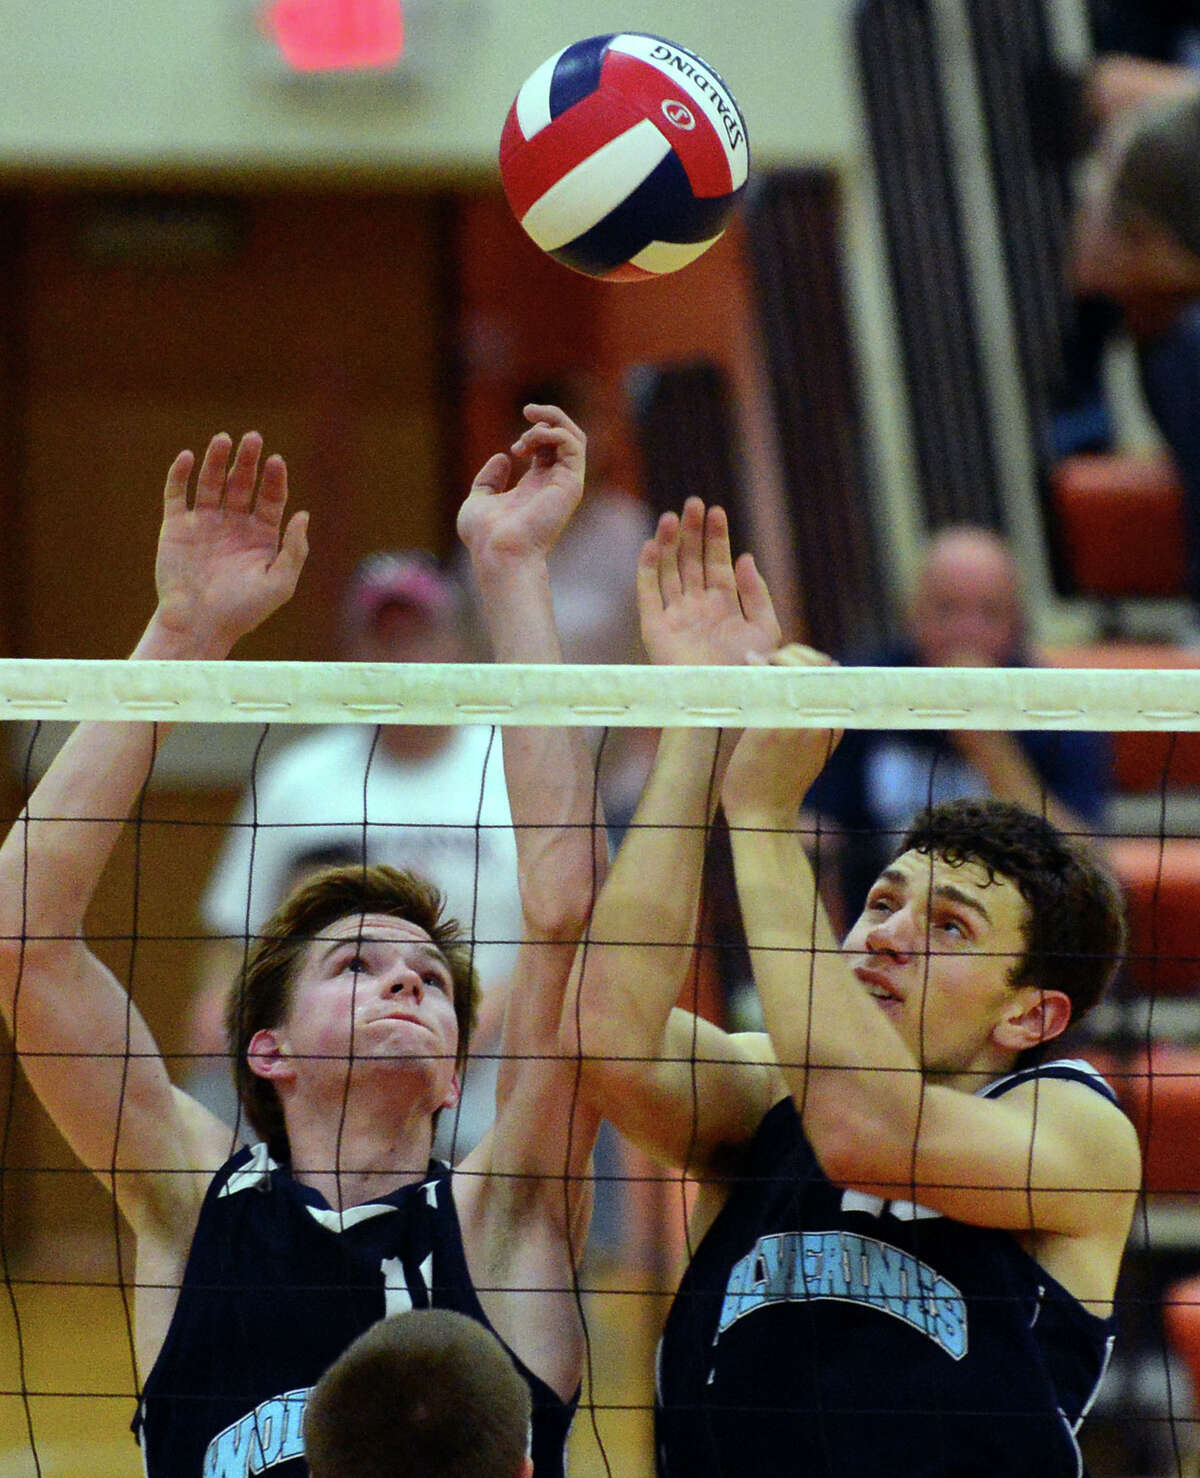 Oxford's Nathan Seibert, left, and teammate Eric Jensen, try to block a Newington shot, during Class M Volleybal Championship action in Shelton, Conn. on Friday June 13, 2014.